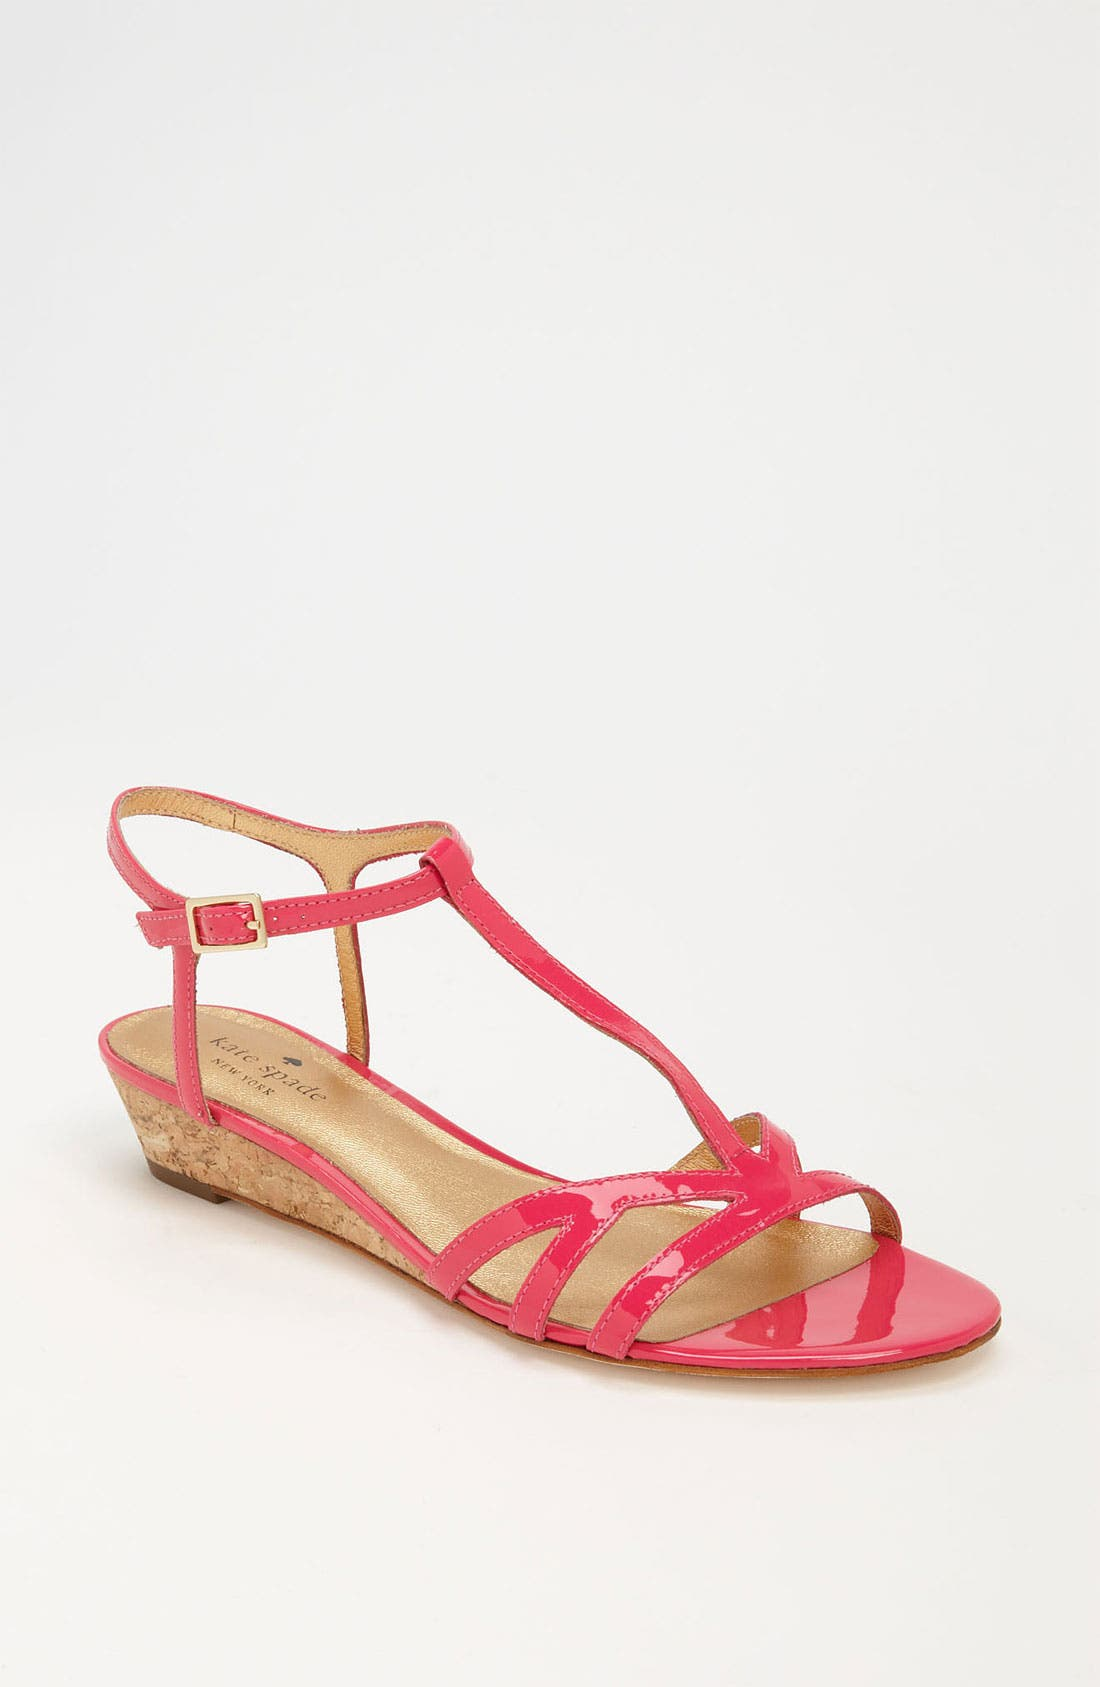 Alternate Image 1 Selected - kate spade new york 'violet' sandal